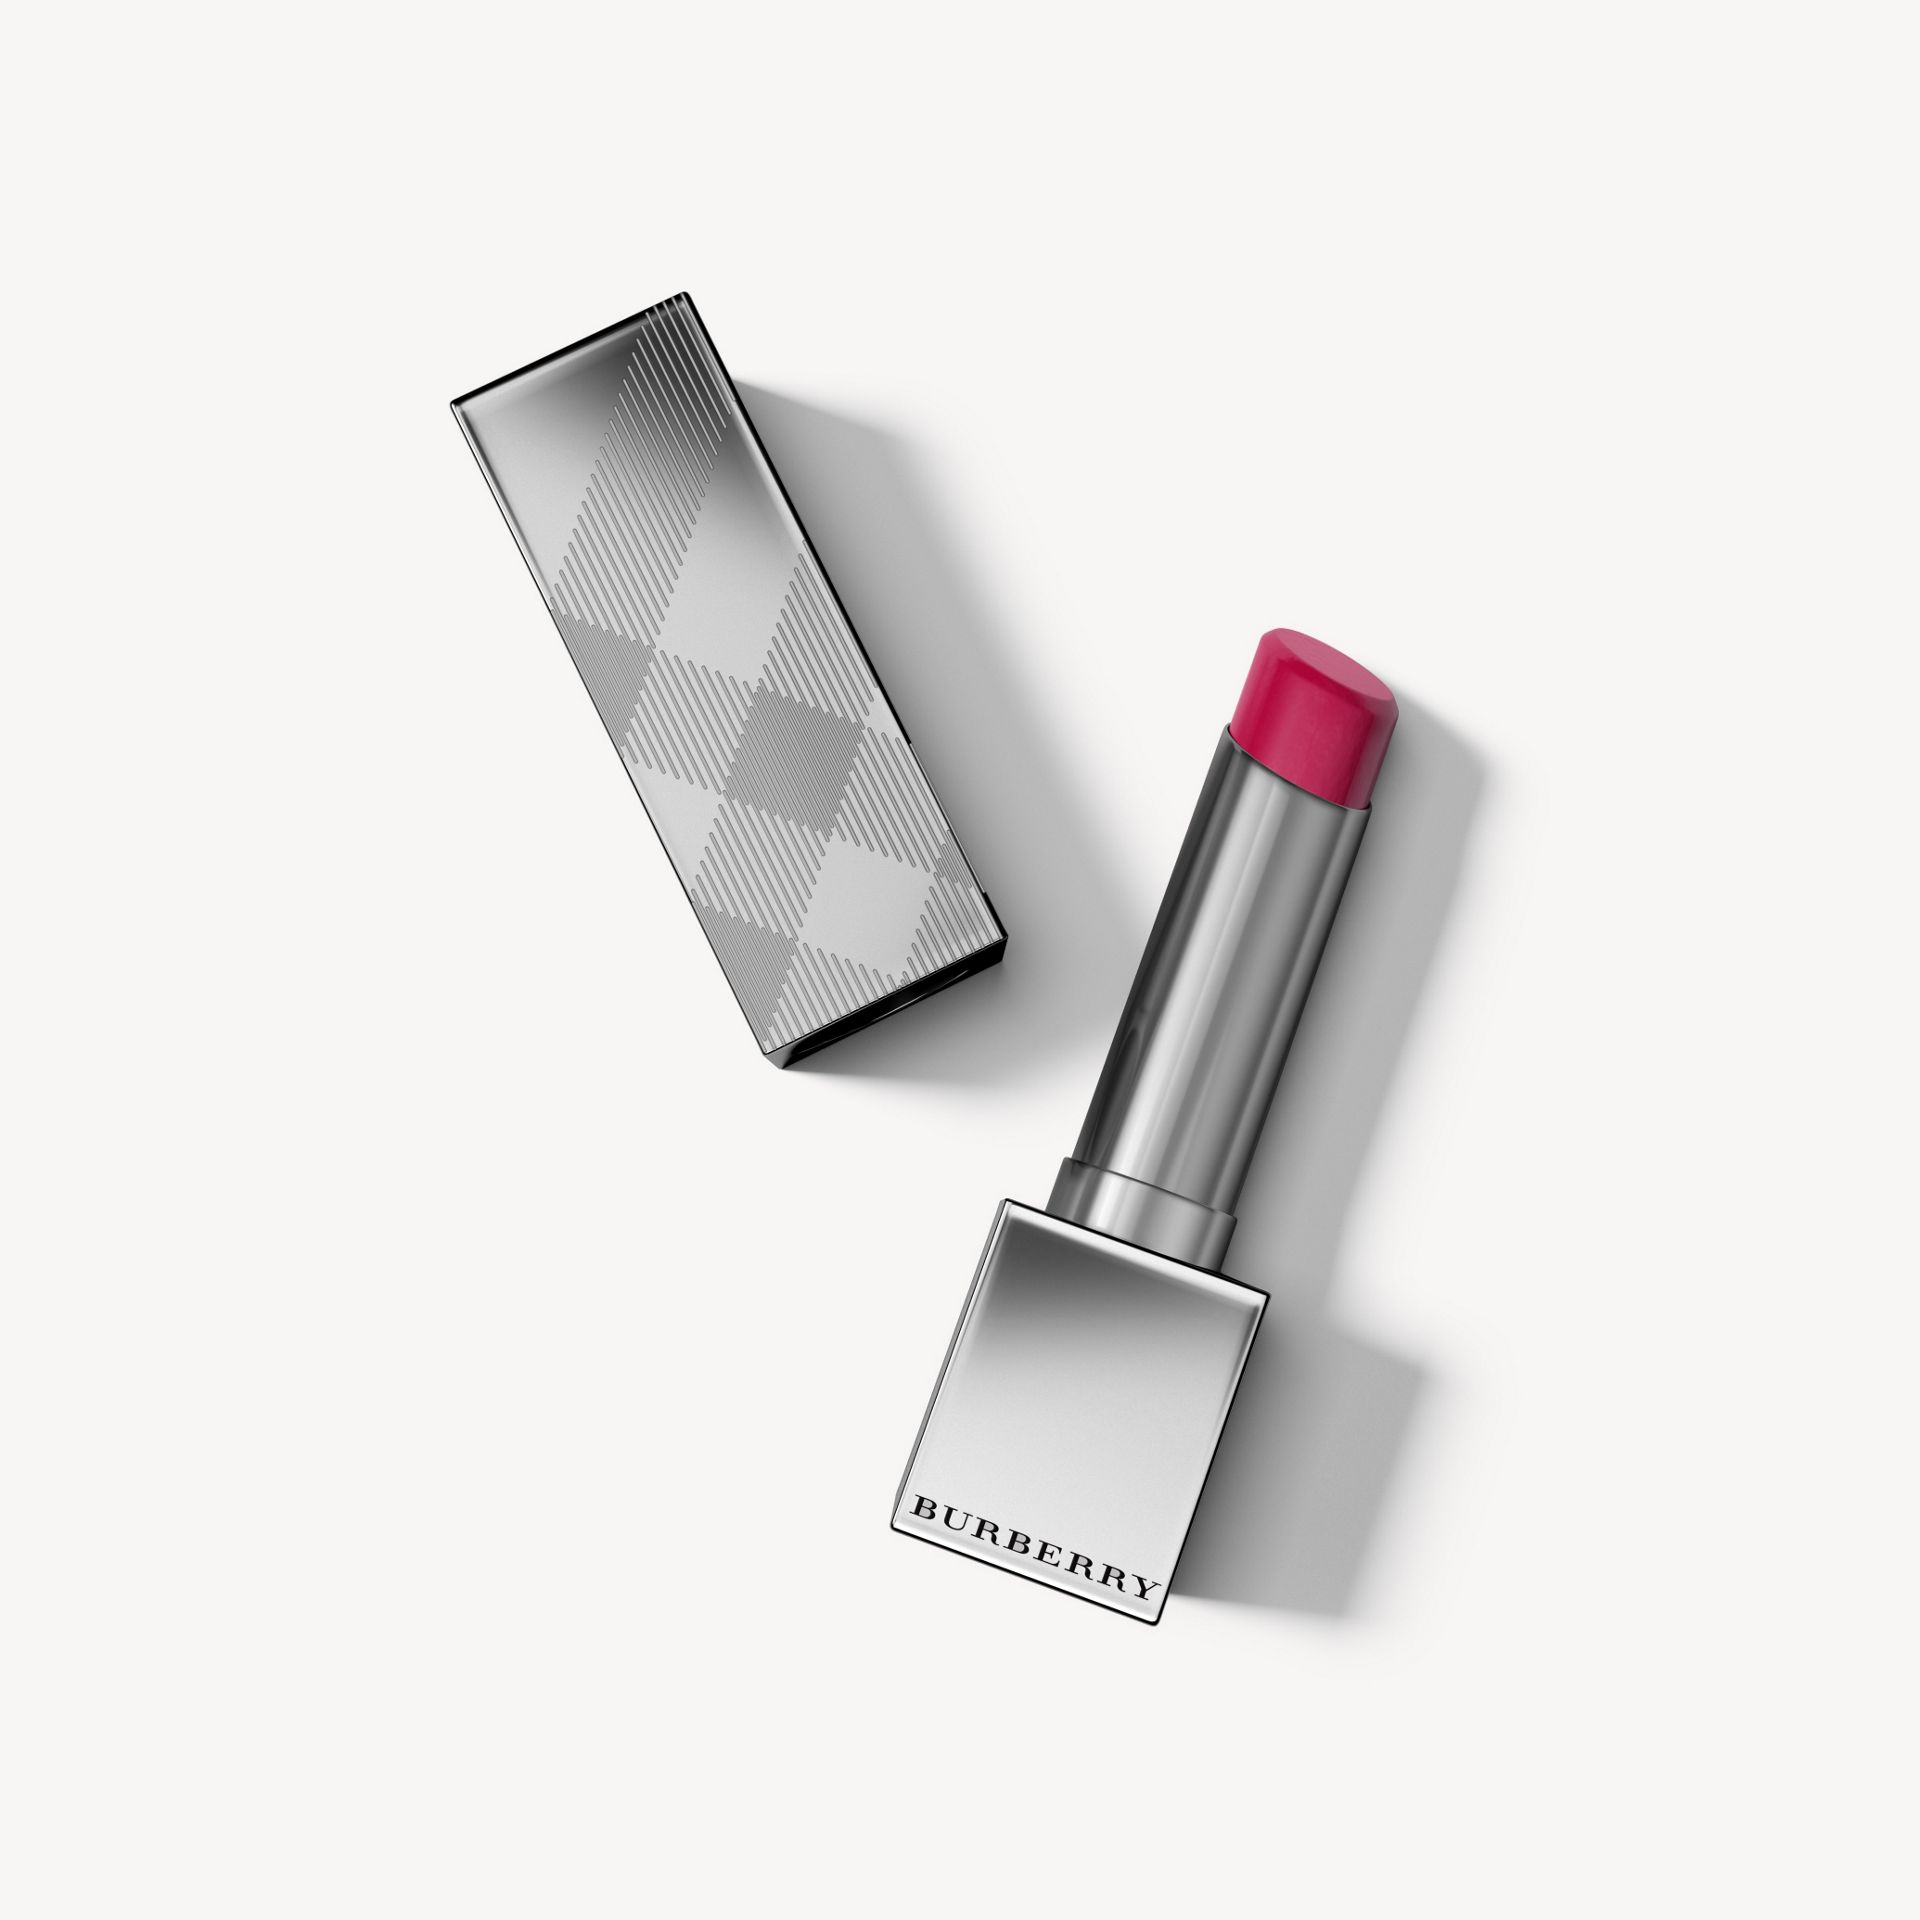 Burberry Kisses Sheer Lip Color